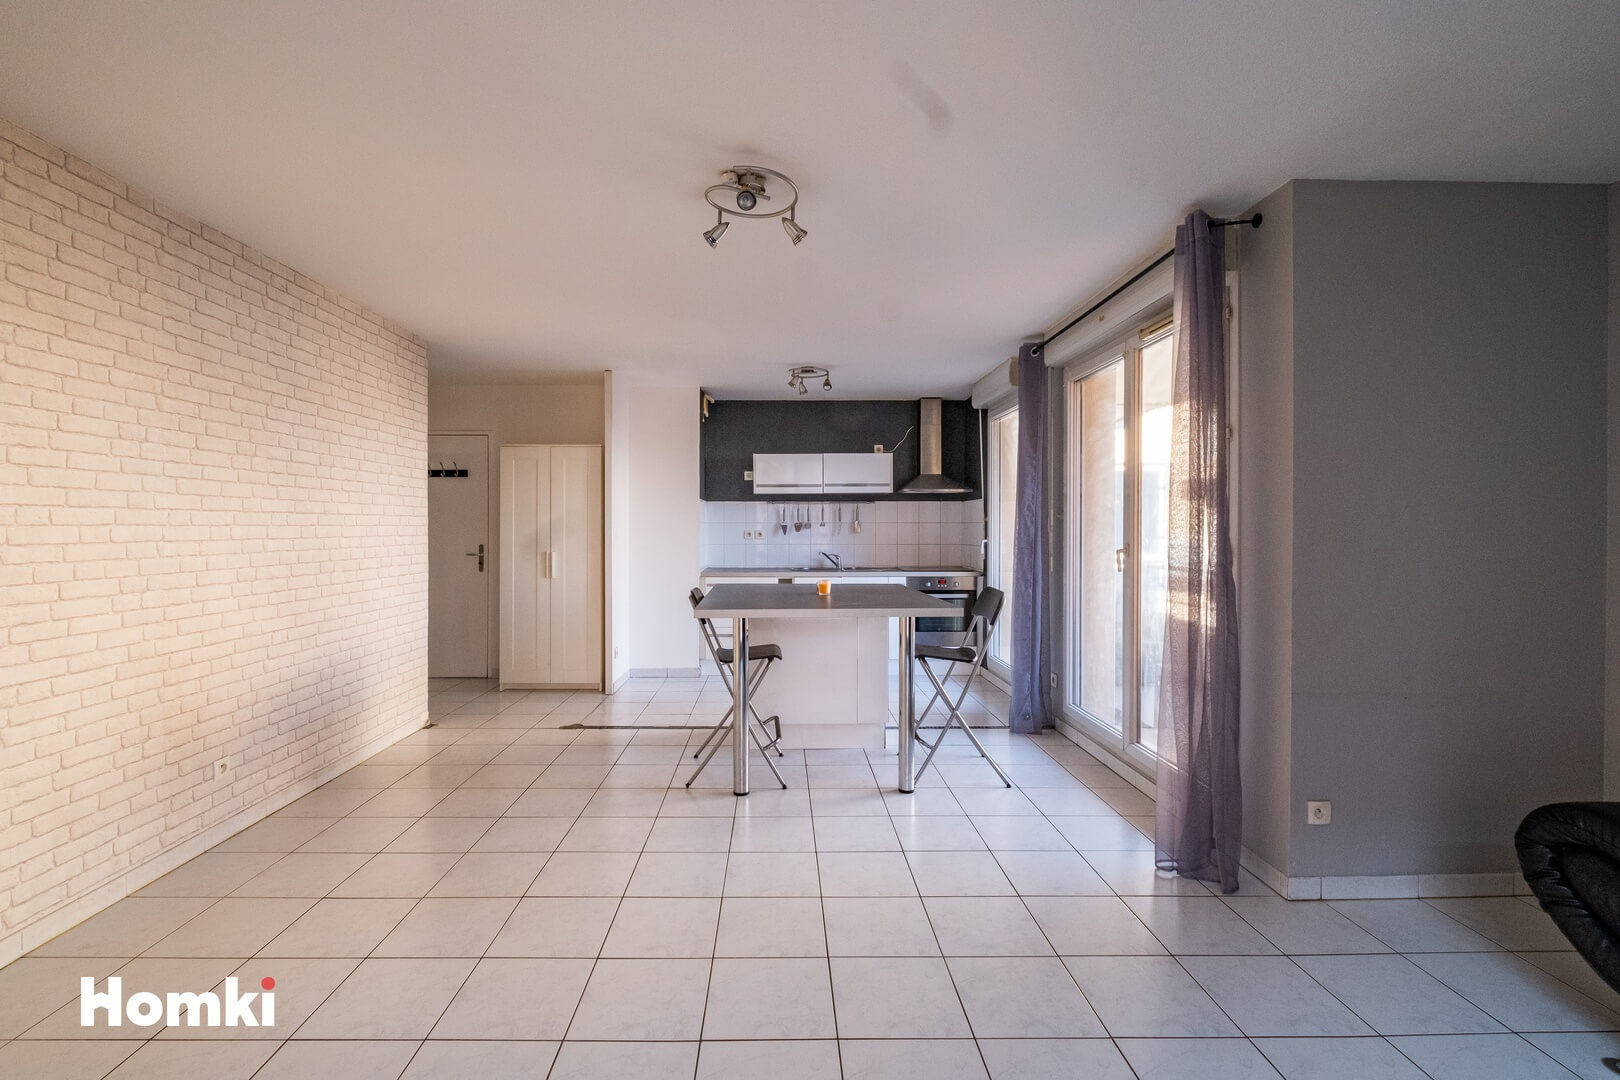 Homki - Vente Appartement  de 59.0 m² à Toulouse 31200